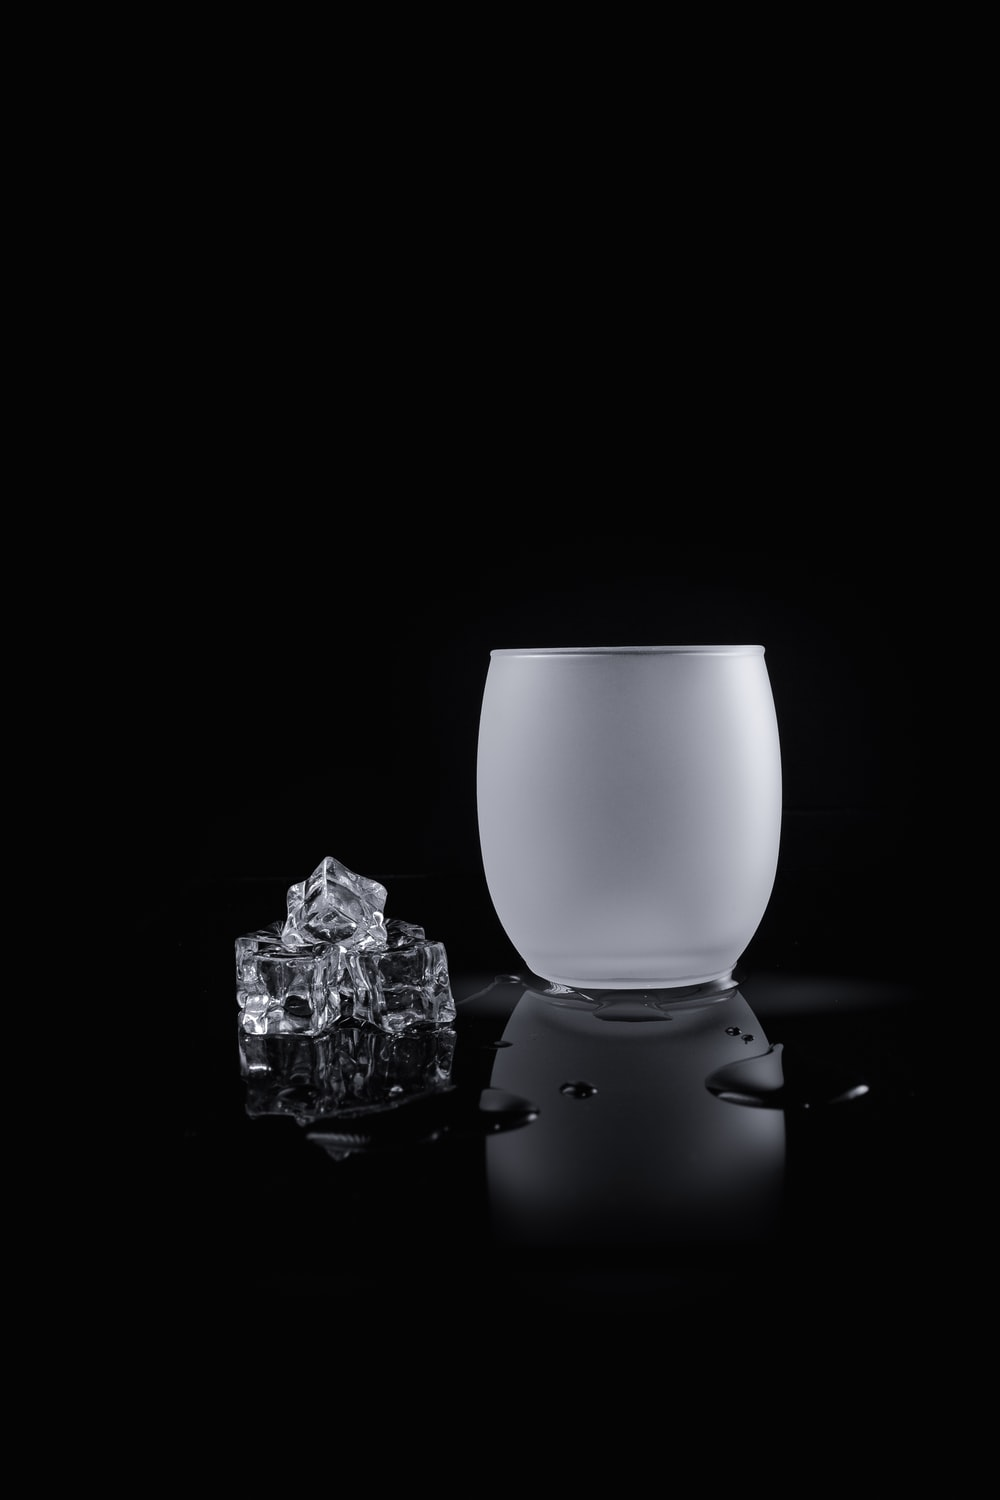 grayscale photo of ice cubes near the vase